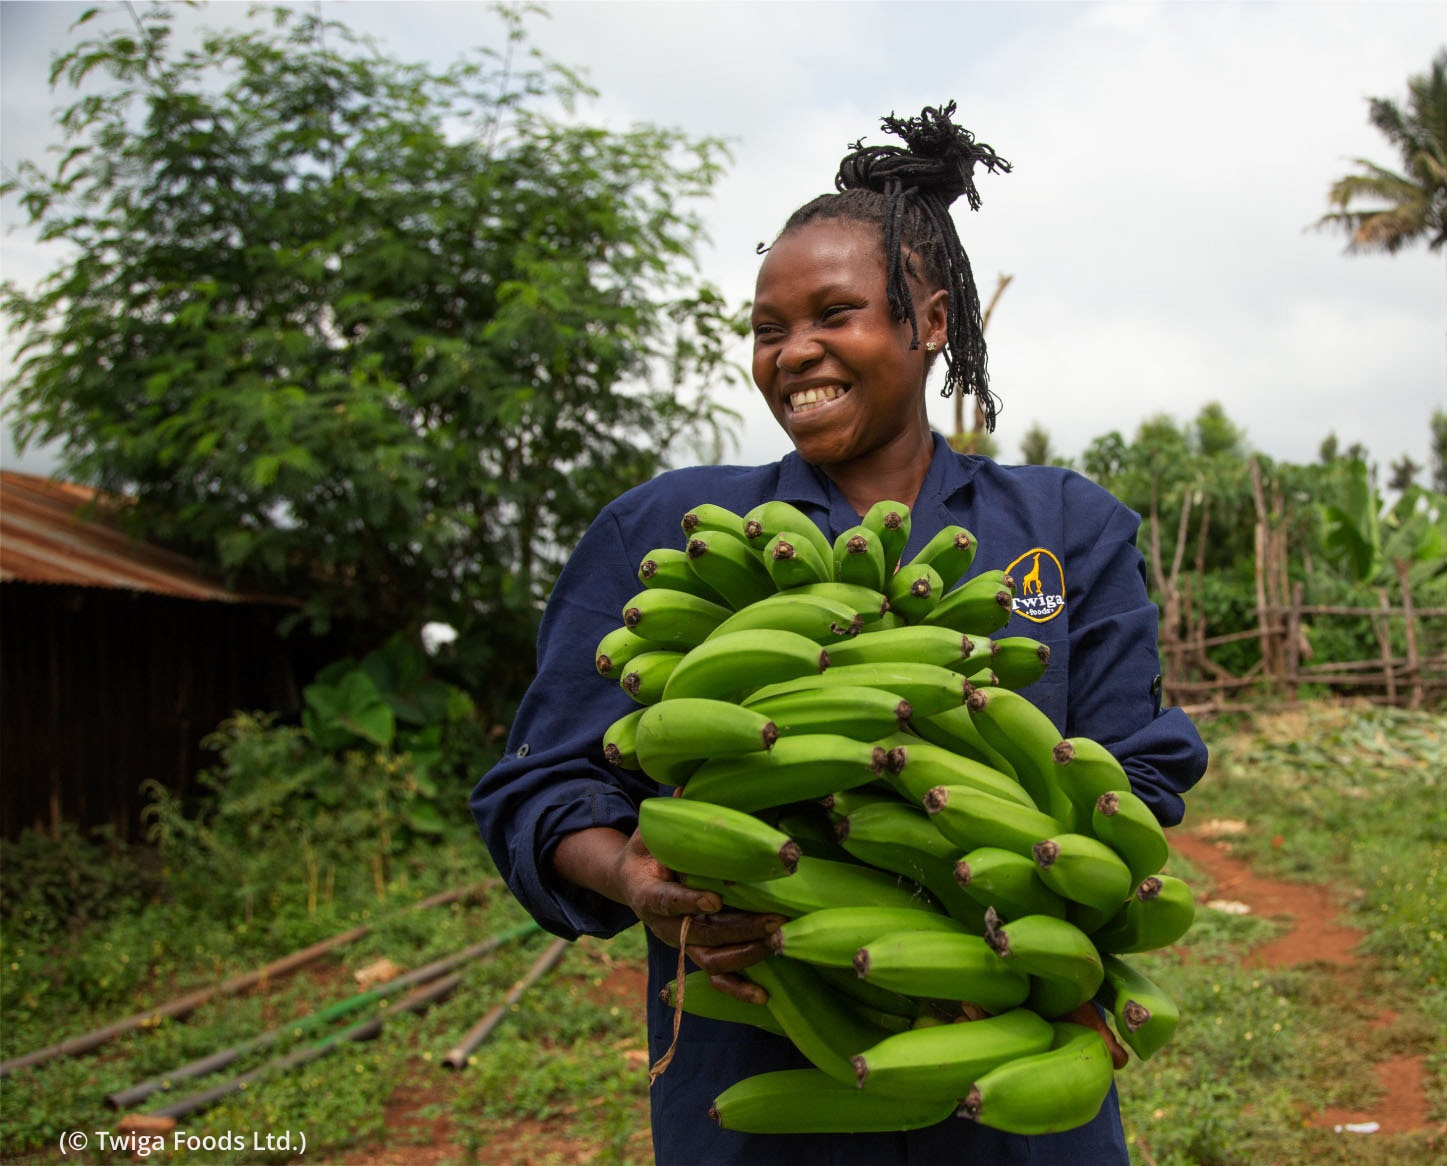 Smiling woman holding bunch of green bananas (© Twiga Foods Ltd.)